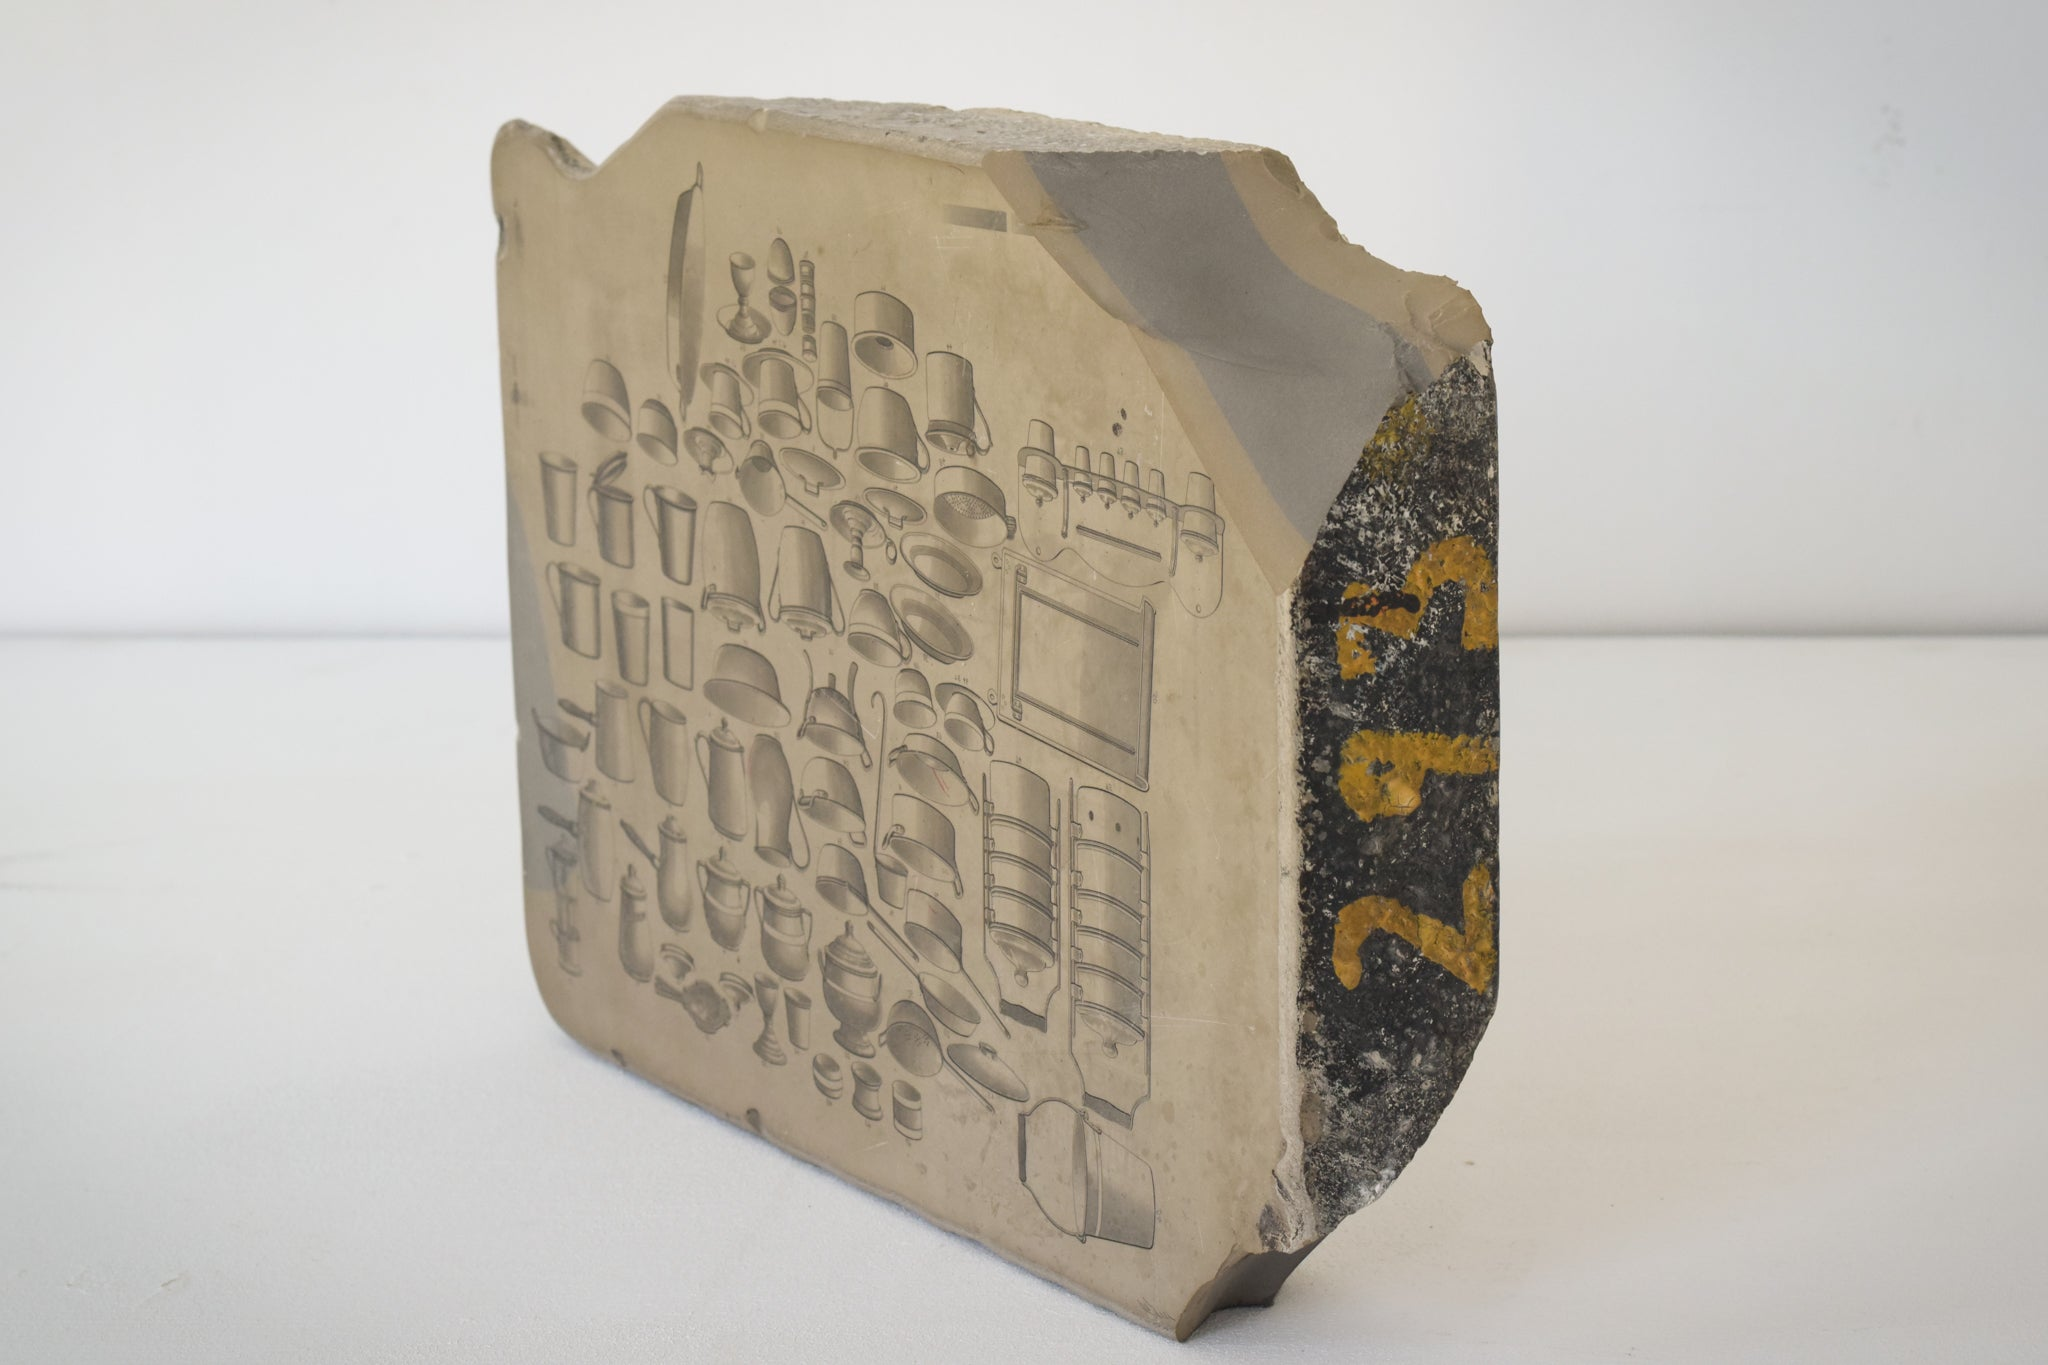 Lithographic Stone with drawings of Culinary Utensils as a design_Detail